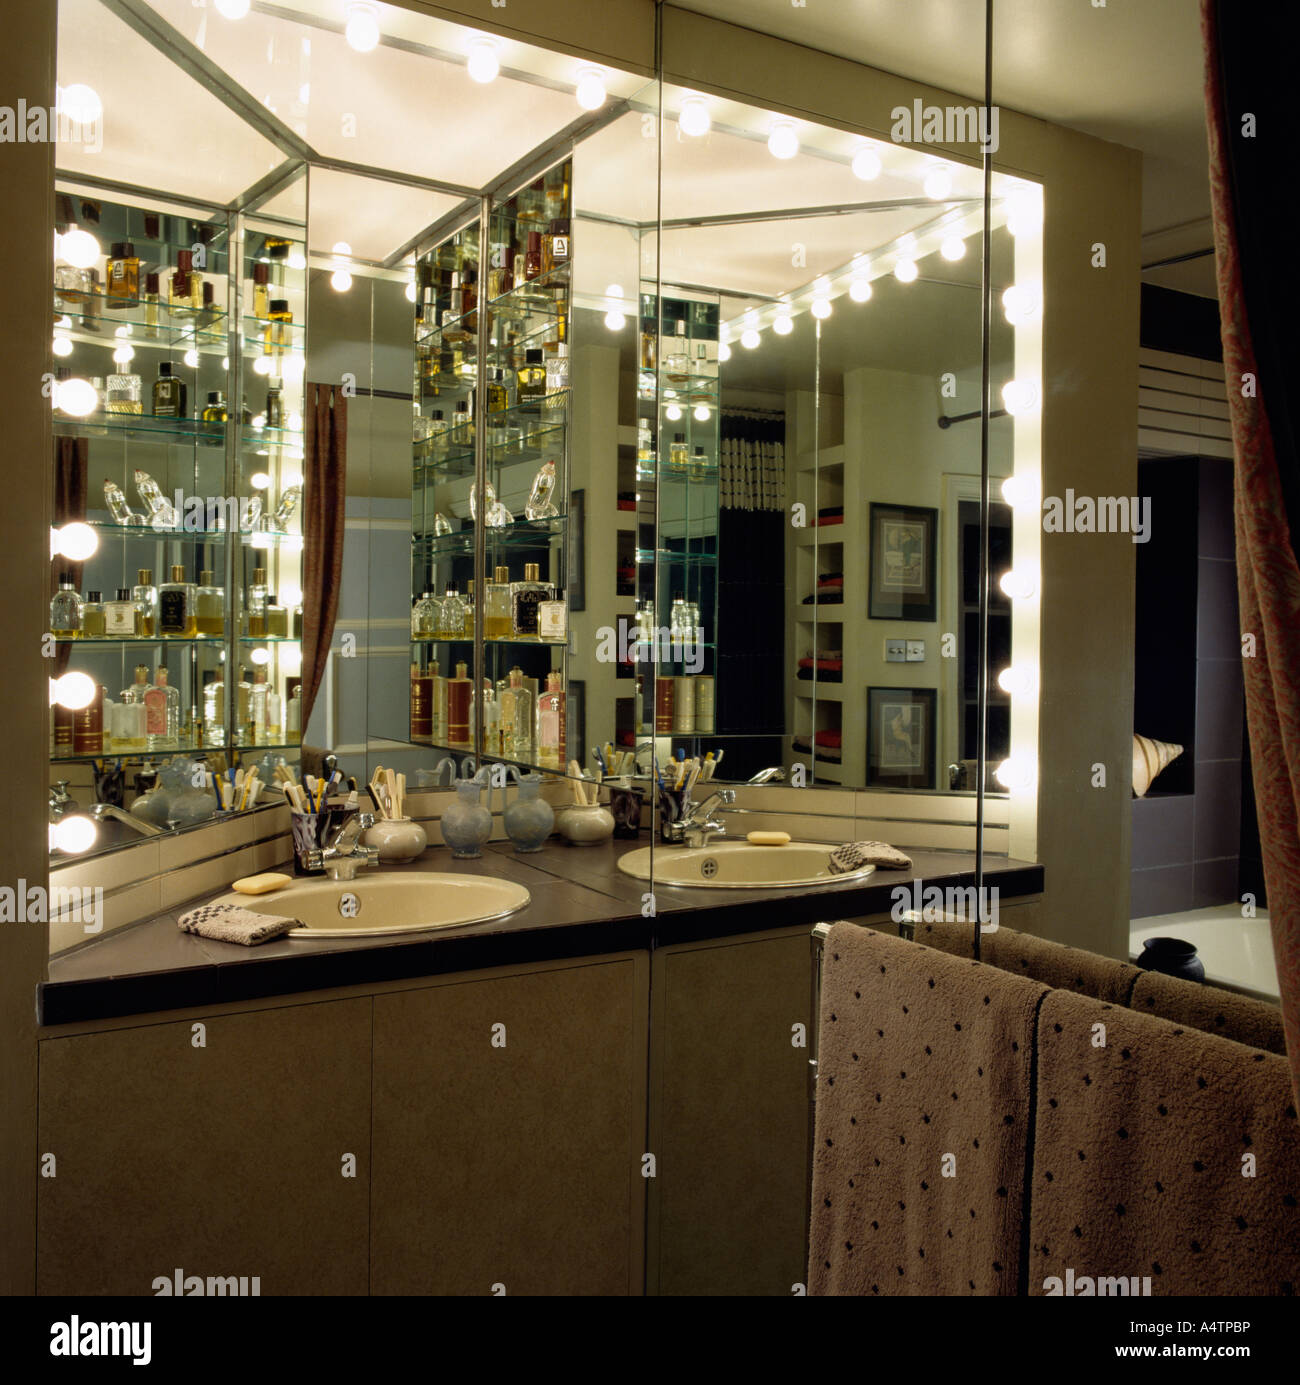 Hollywood Lights Bathroom: Interiors Bathrooms Archival Domestic Stock Photos